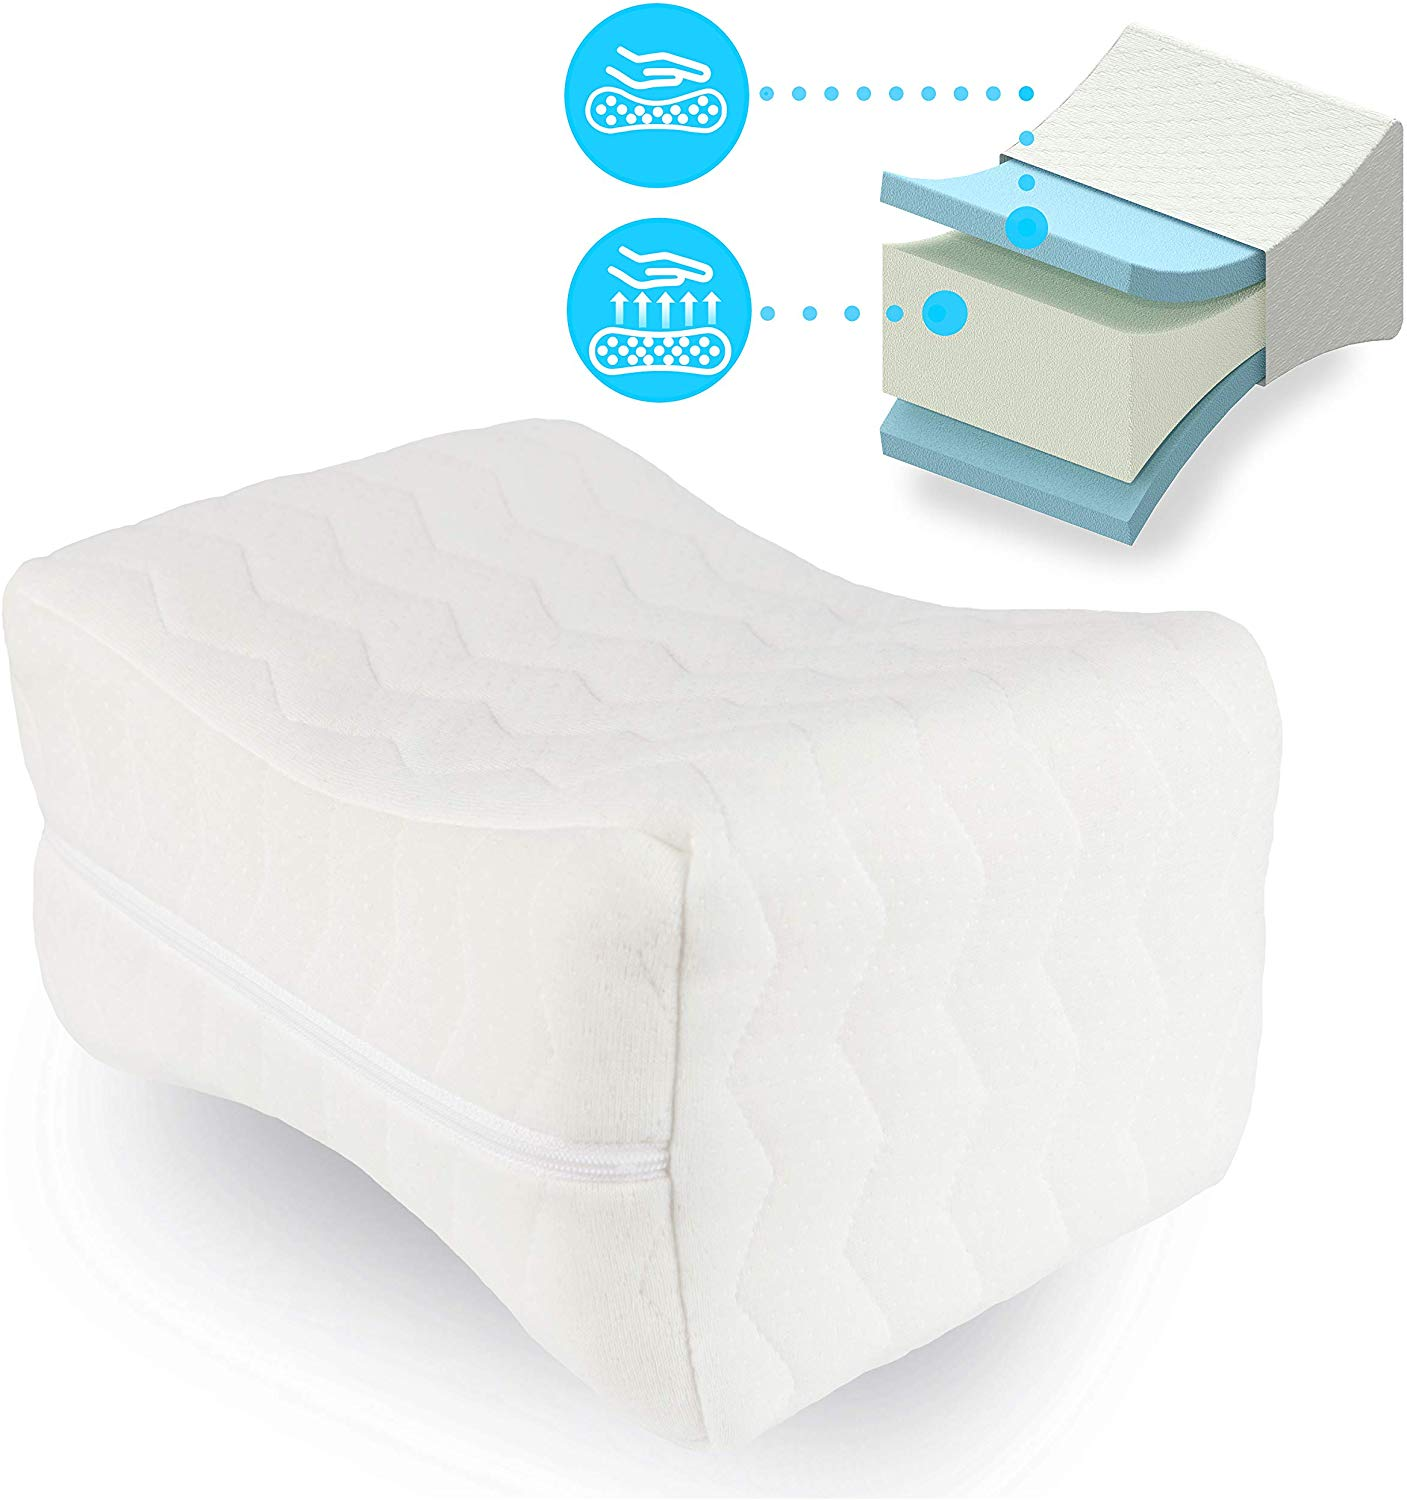 AR-relax Knee pillow Memory foam leg cushion support – Relief in sciatica, lower back, hips, legs and joint pain – Pillow